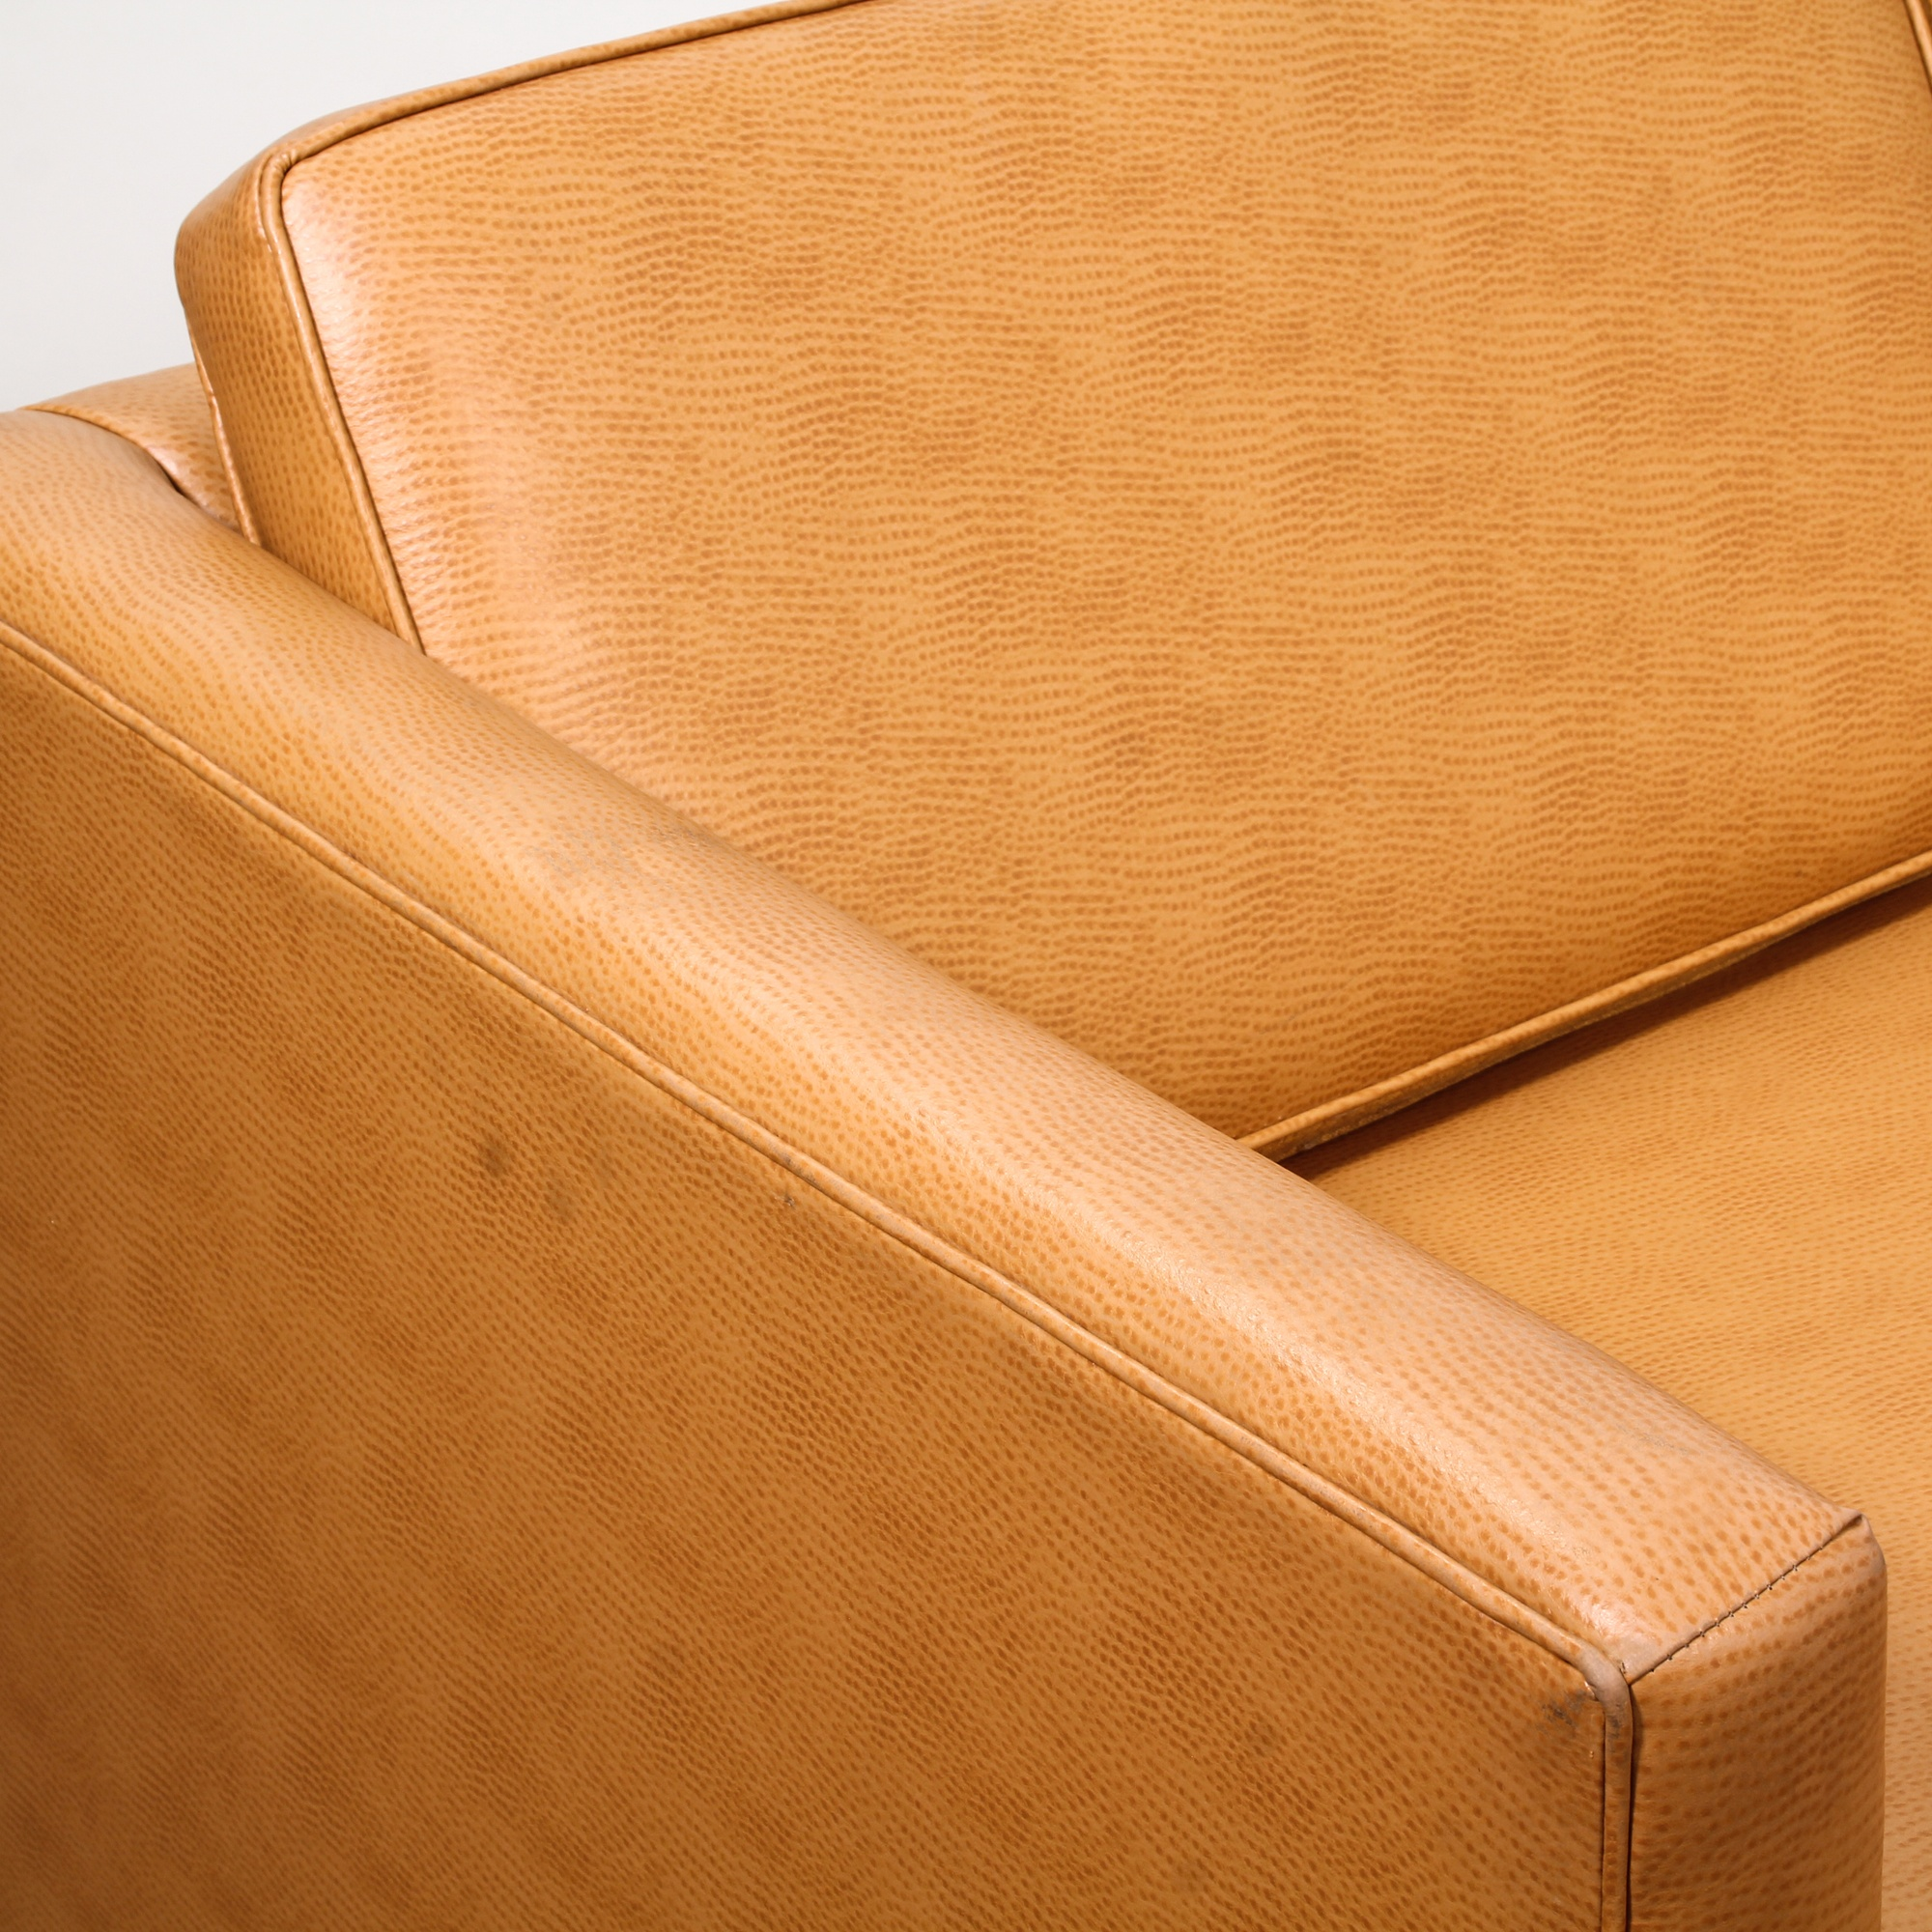 Modern Tan Vinyl Upholstered Loveseat Sofa 2 Loveseat Vintage Furniture San Diego Los Angeles